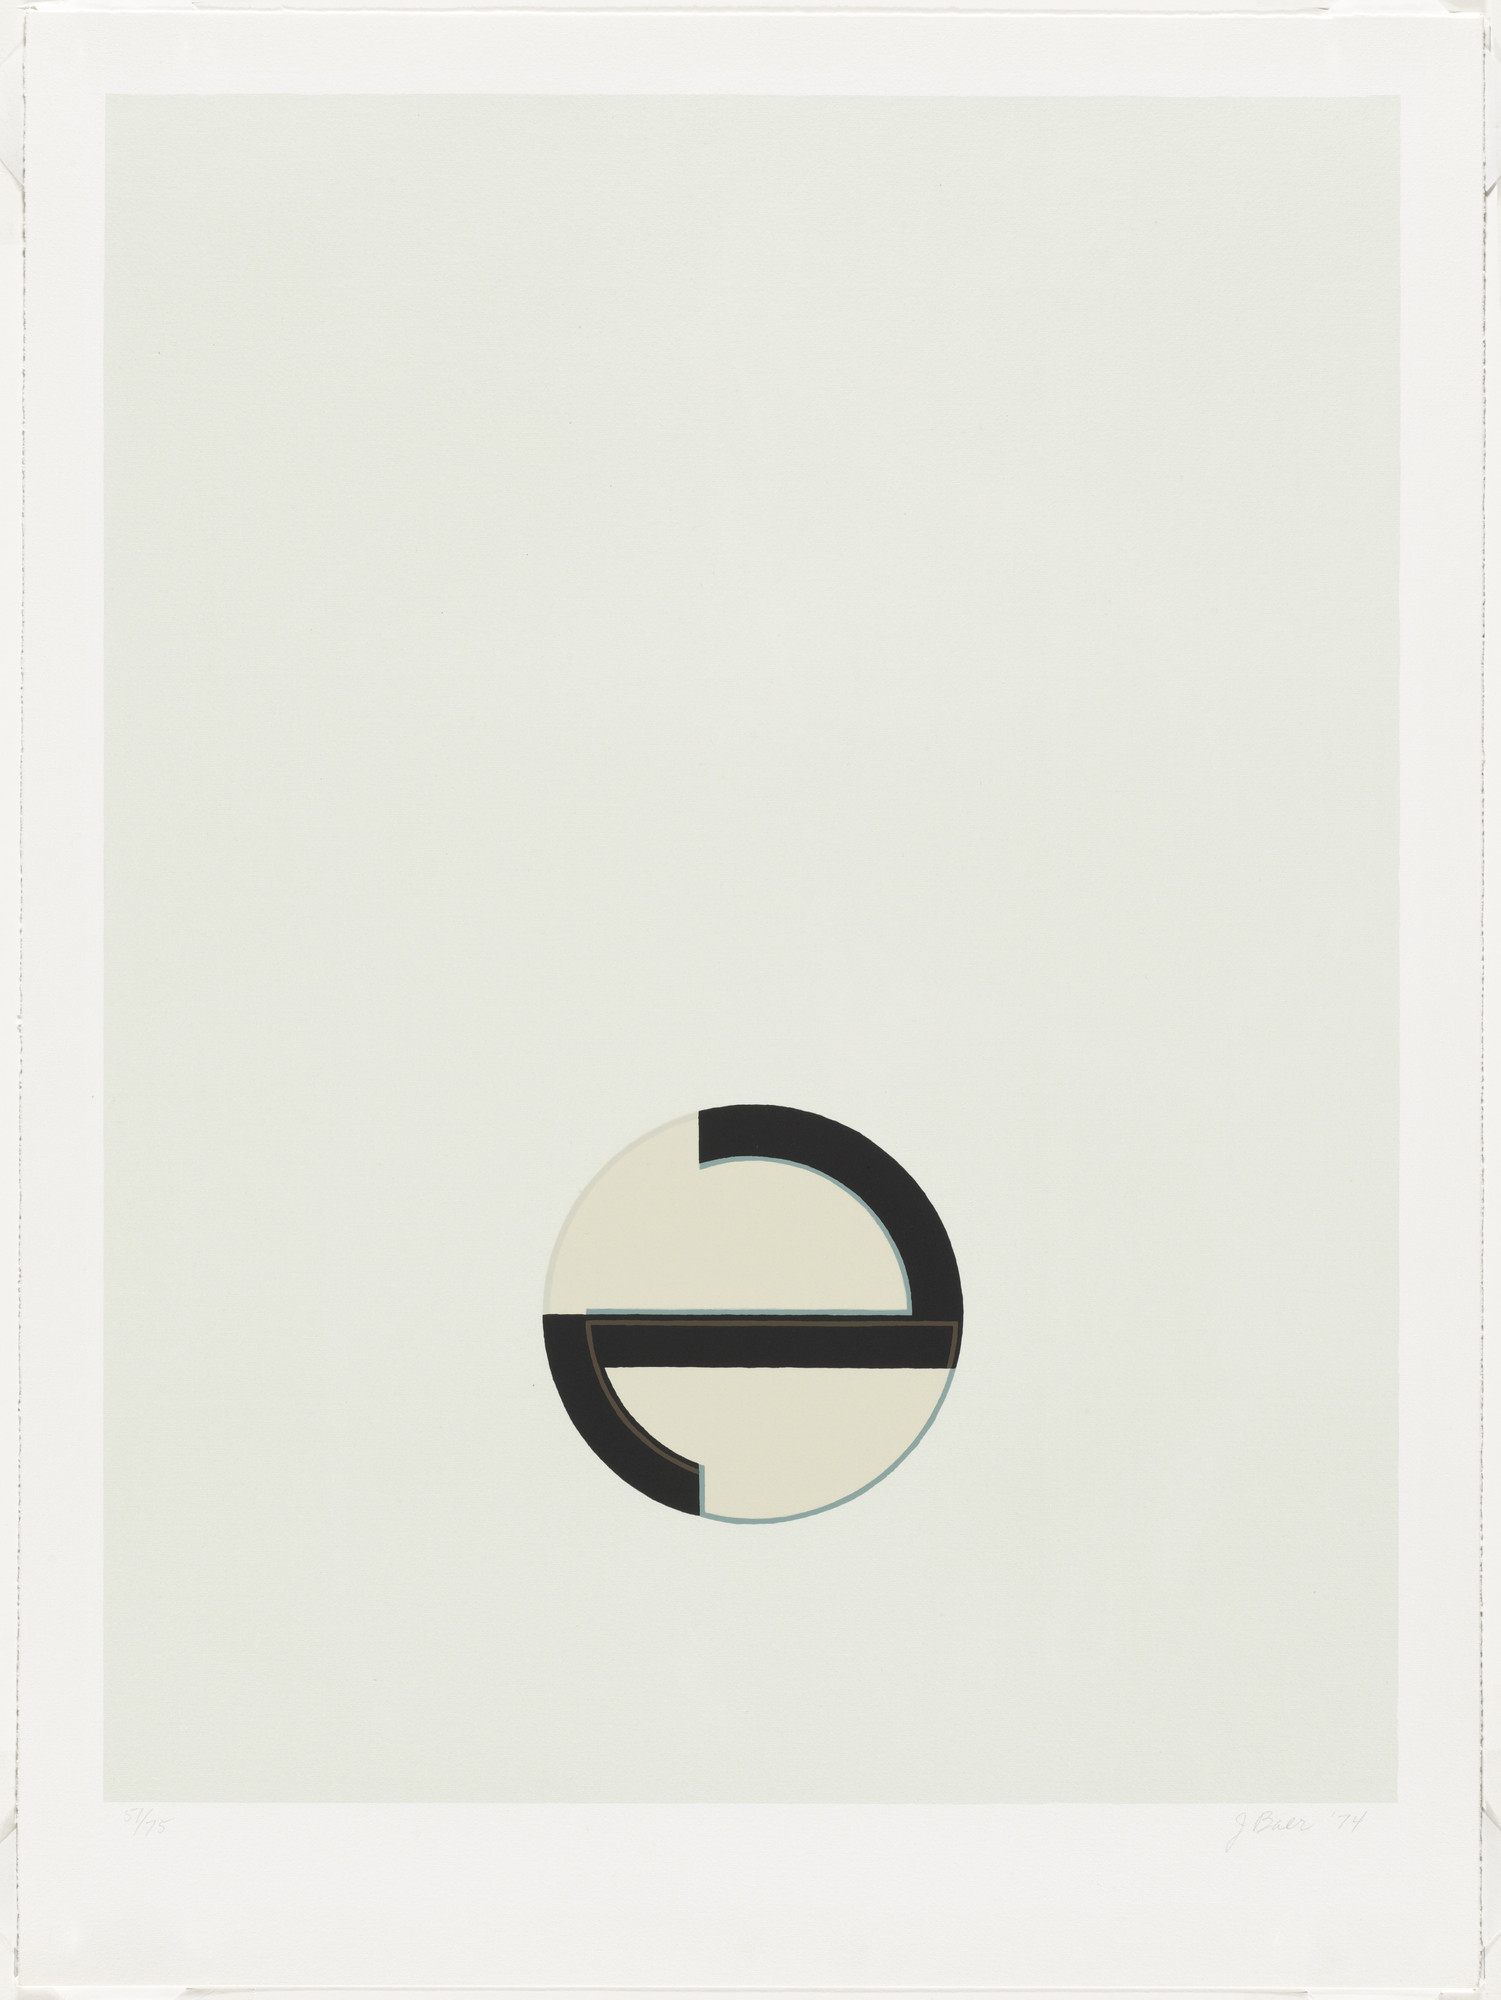 Jo Baer. Untitled from Cardinations. 1974